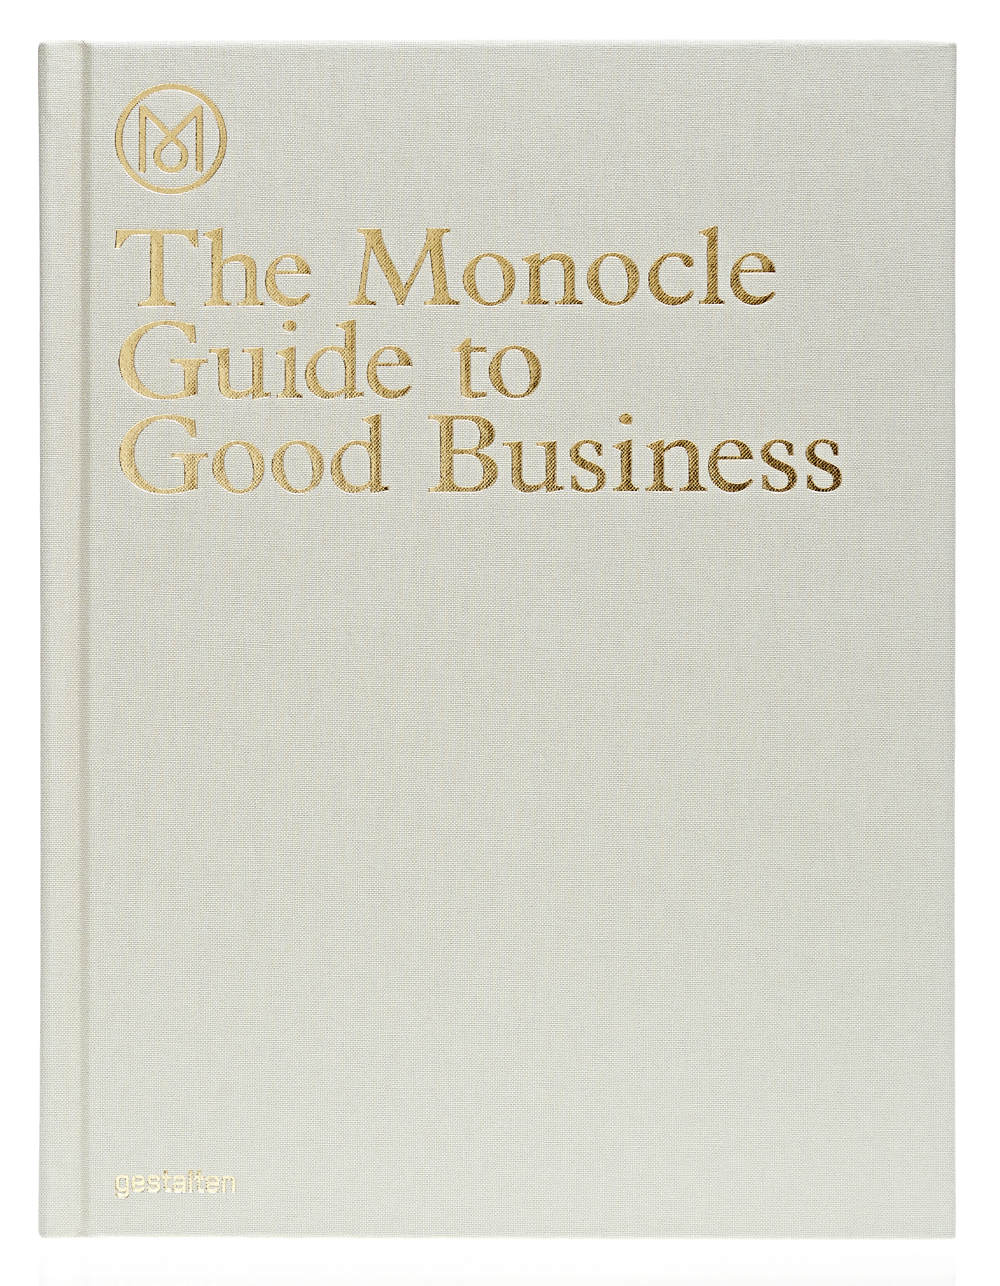 The Monocle Guide to Good Business copyright Gestalten 2016